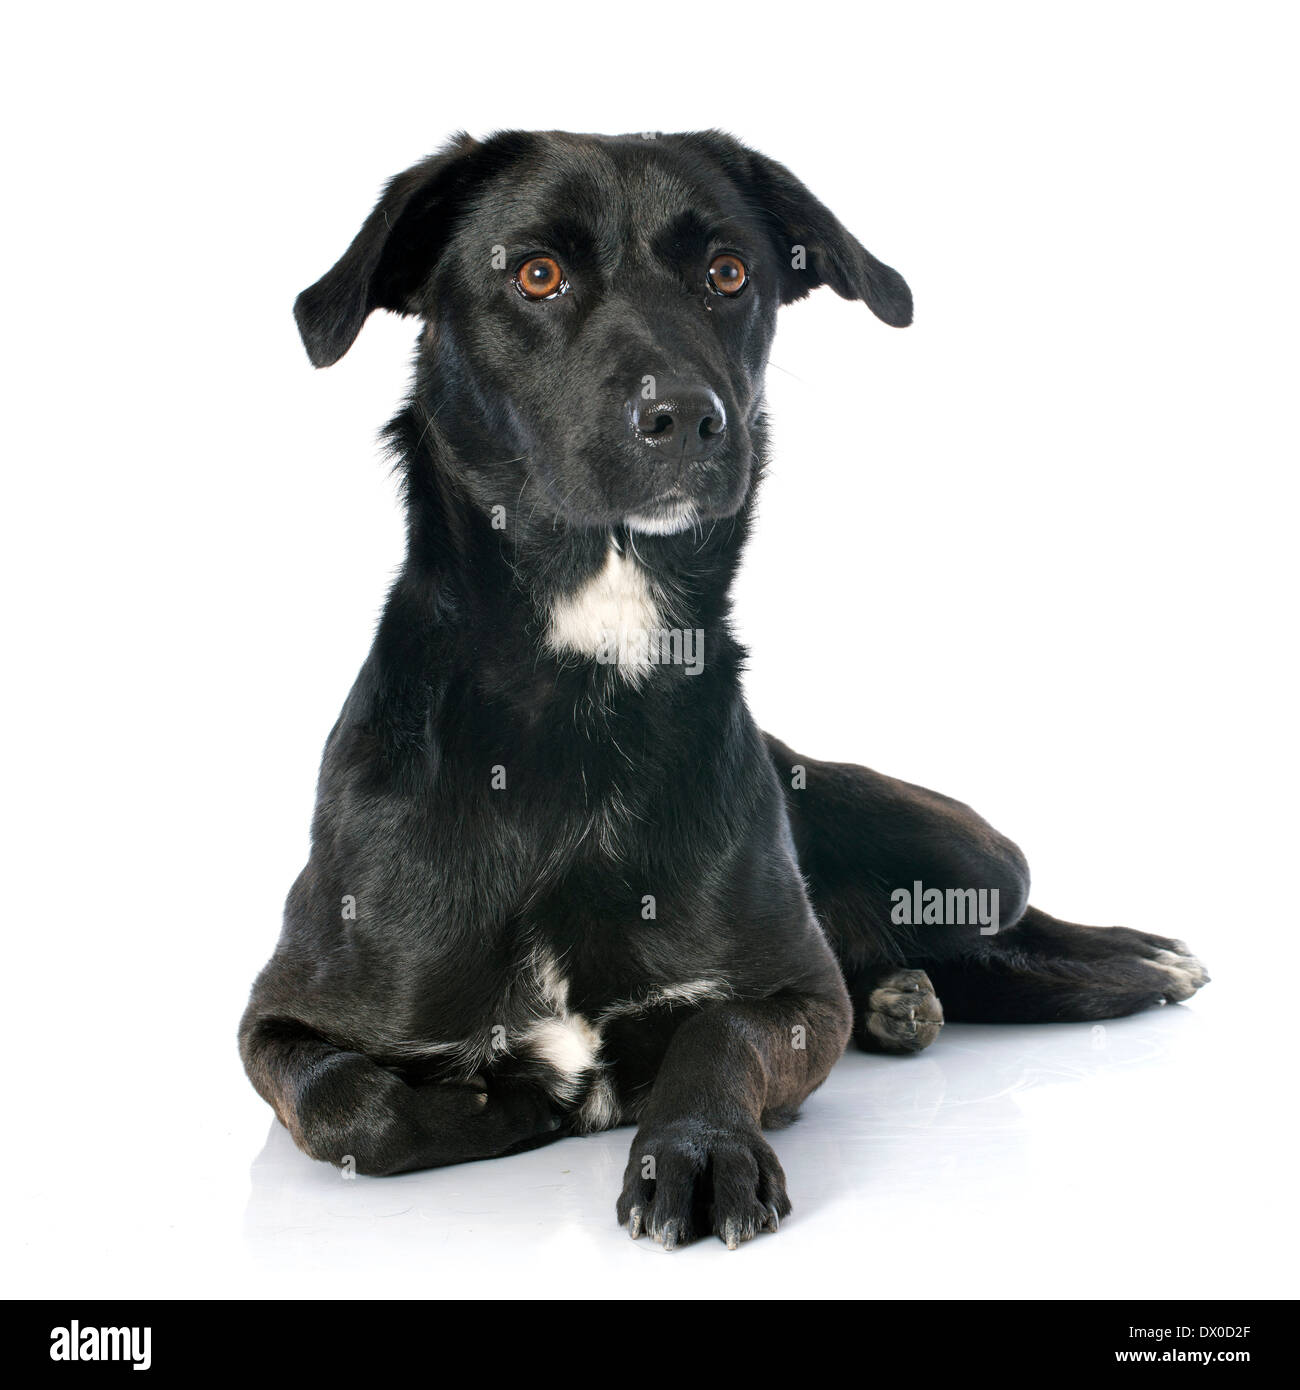 crossbred labrador retriever in front of white background - Stock Image